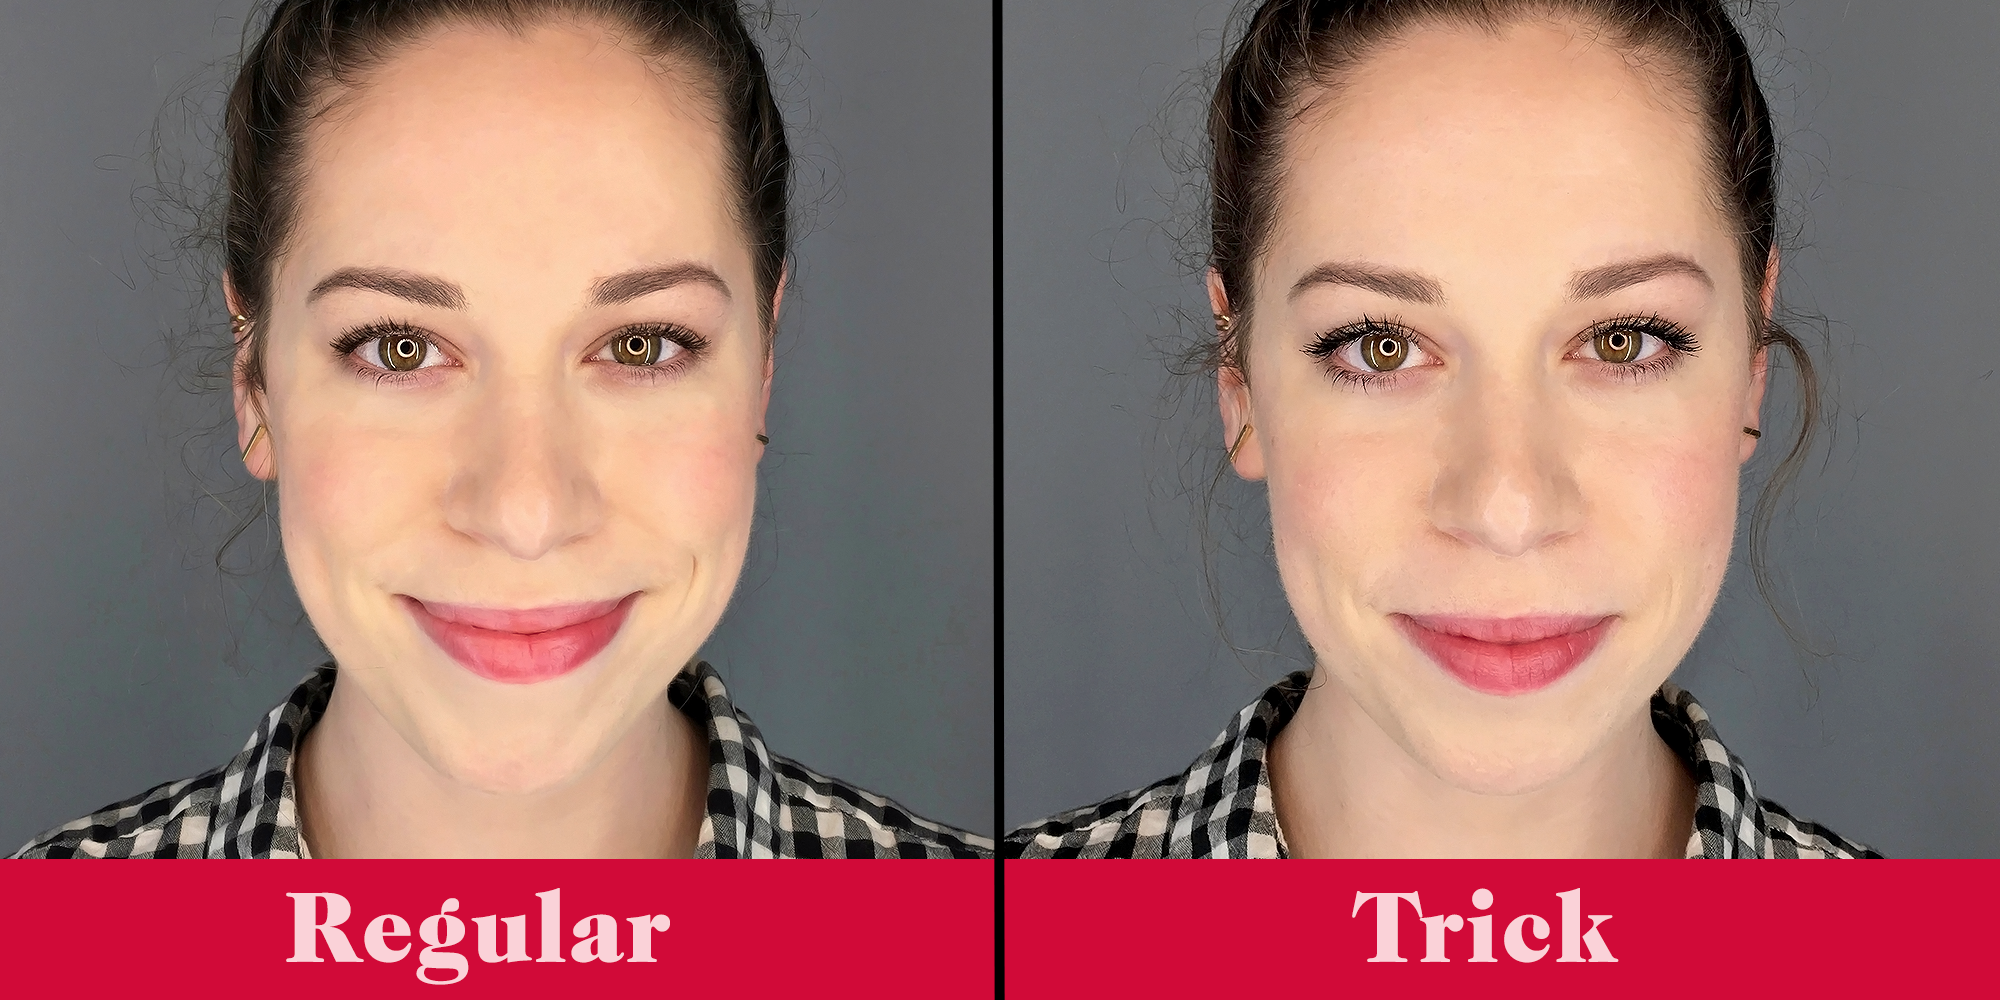 How to Apply Mascara for Thick, Long, Voluminous Lashes - The One